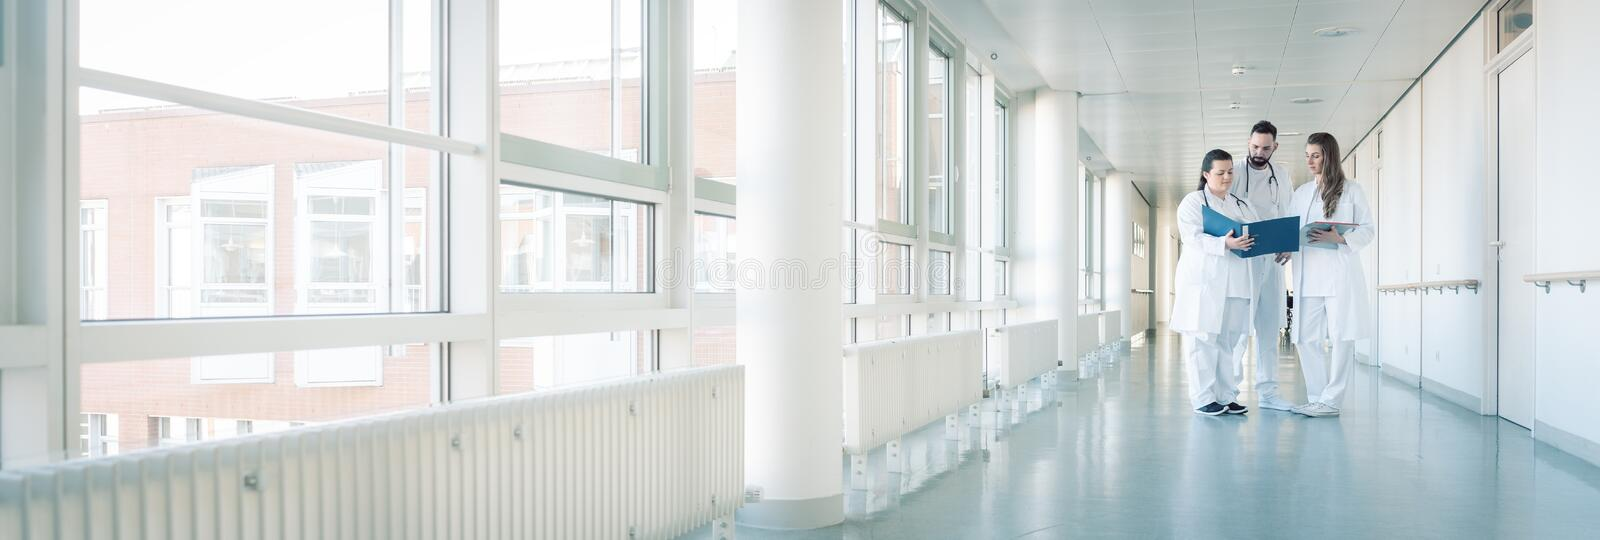 Three doctors on hospital corridor having short meeting. Discussing some cases royalty free stock photo